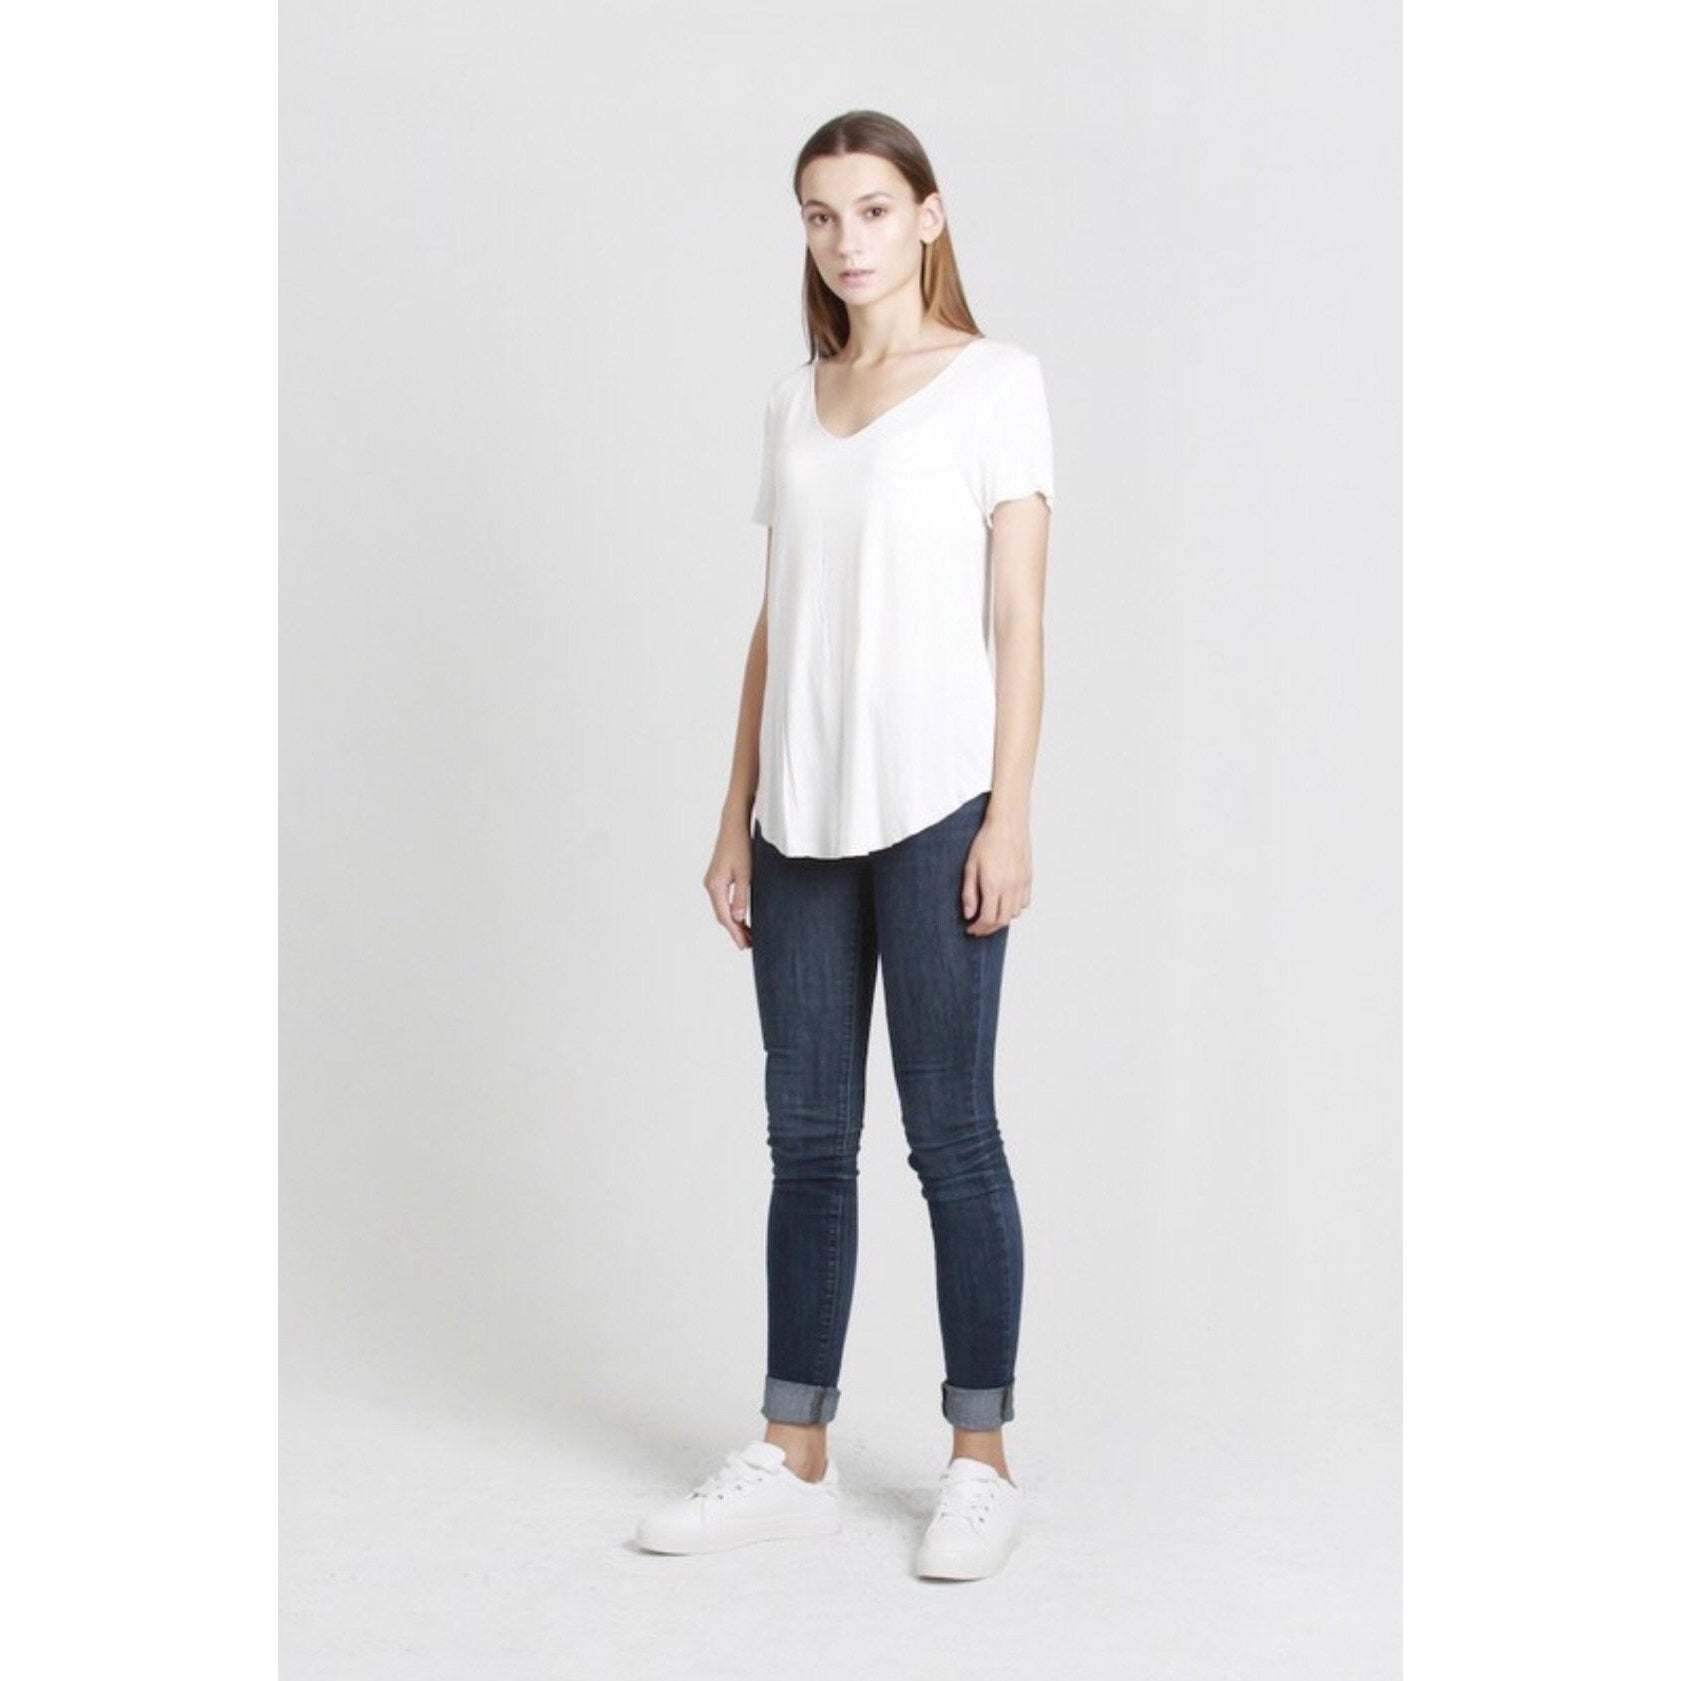 The Everyday Top - White